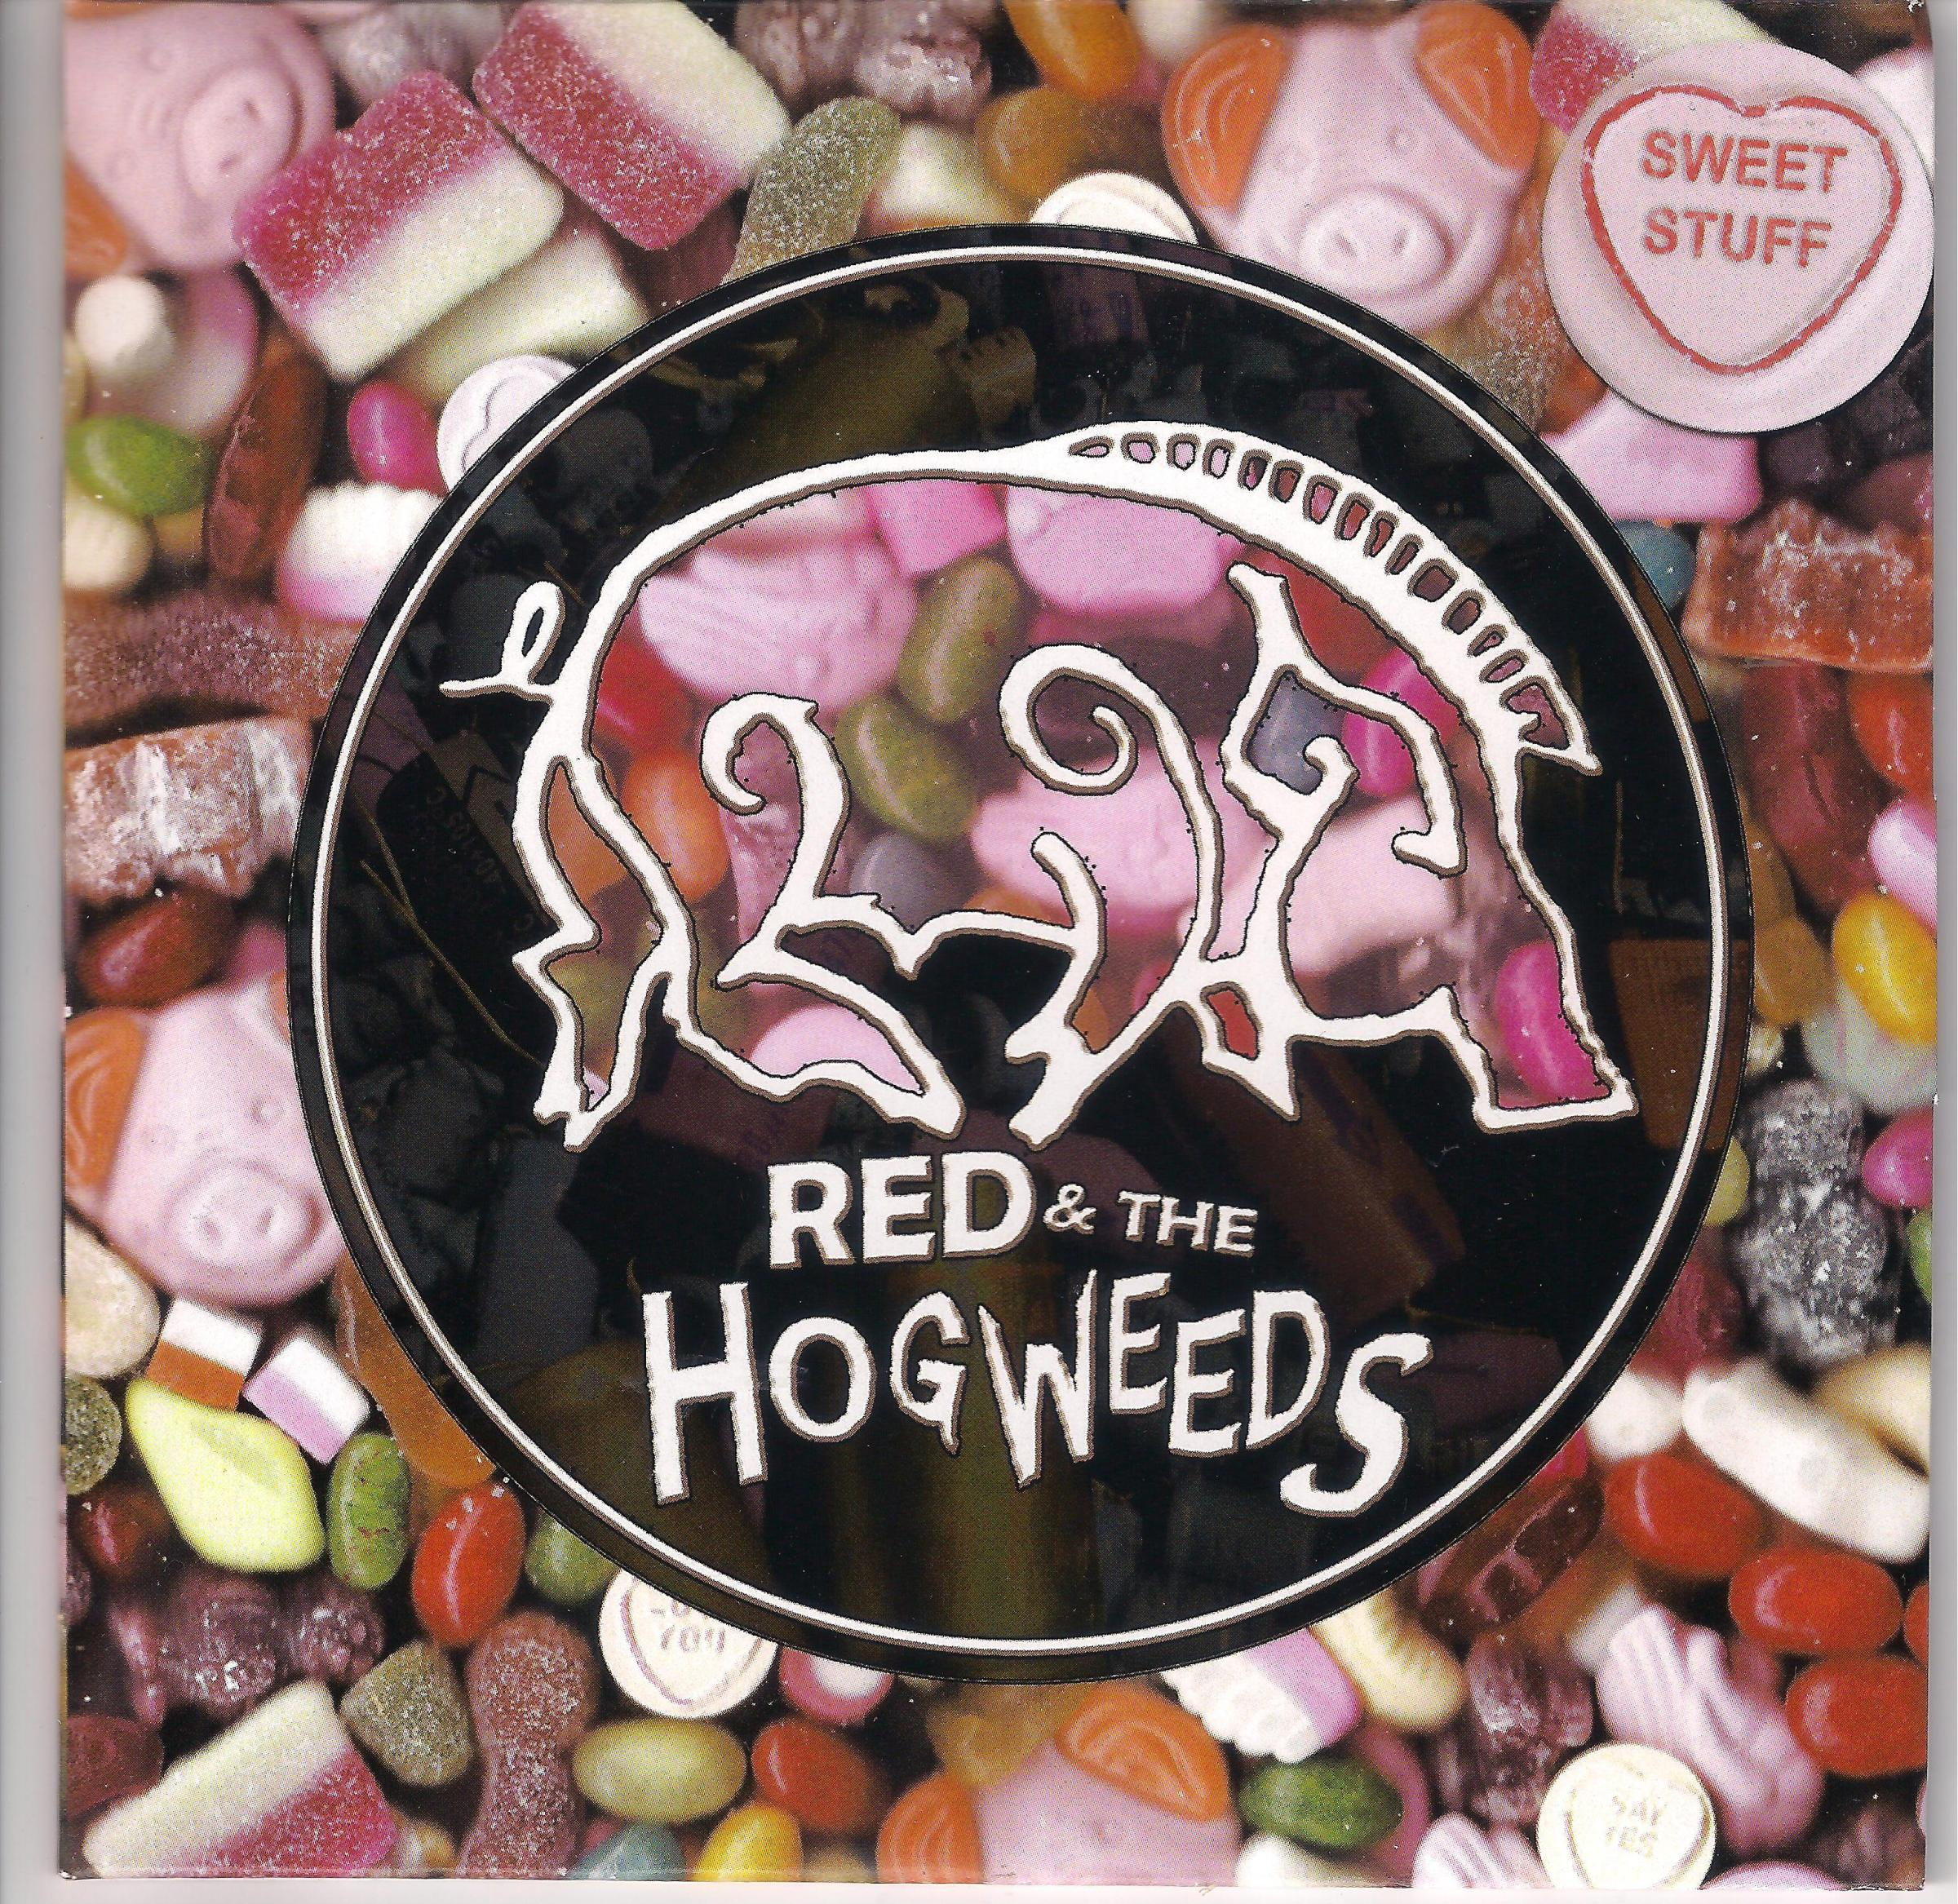 Red and the Hogweeds